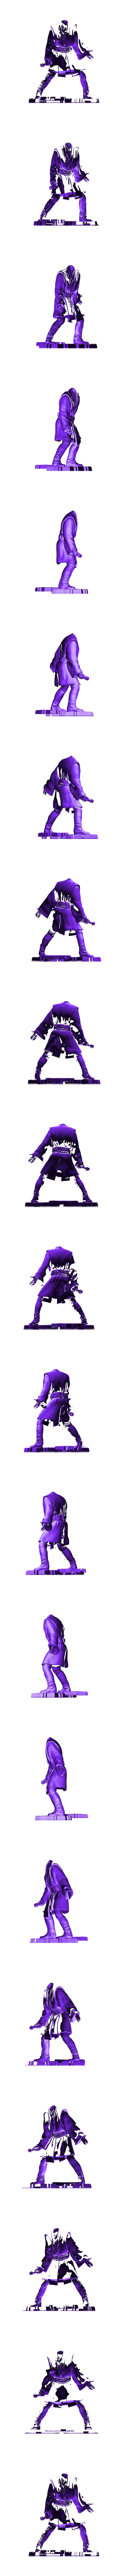 Jedi body clean.stl Download free STL file jedi • 3D printing template, tutus